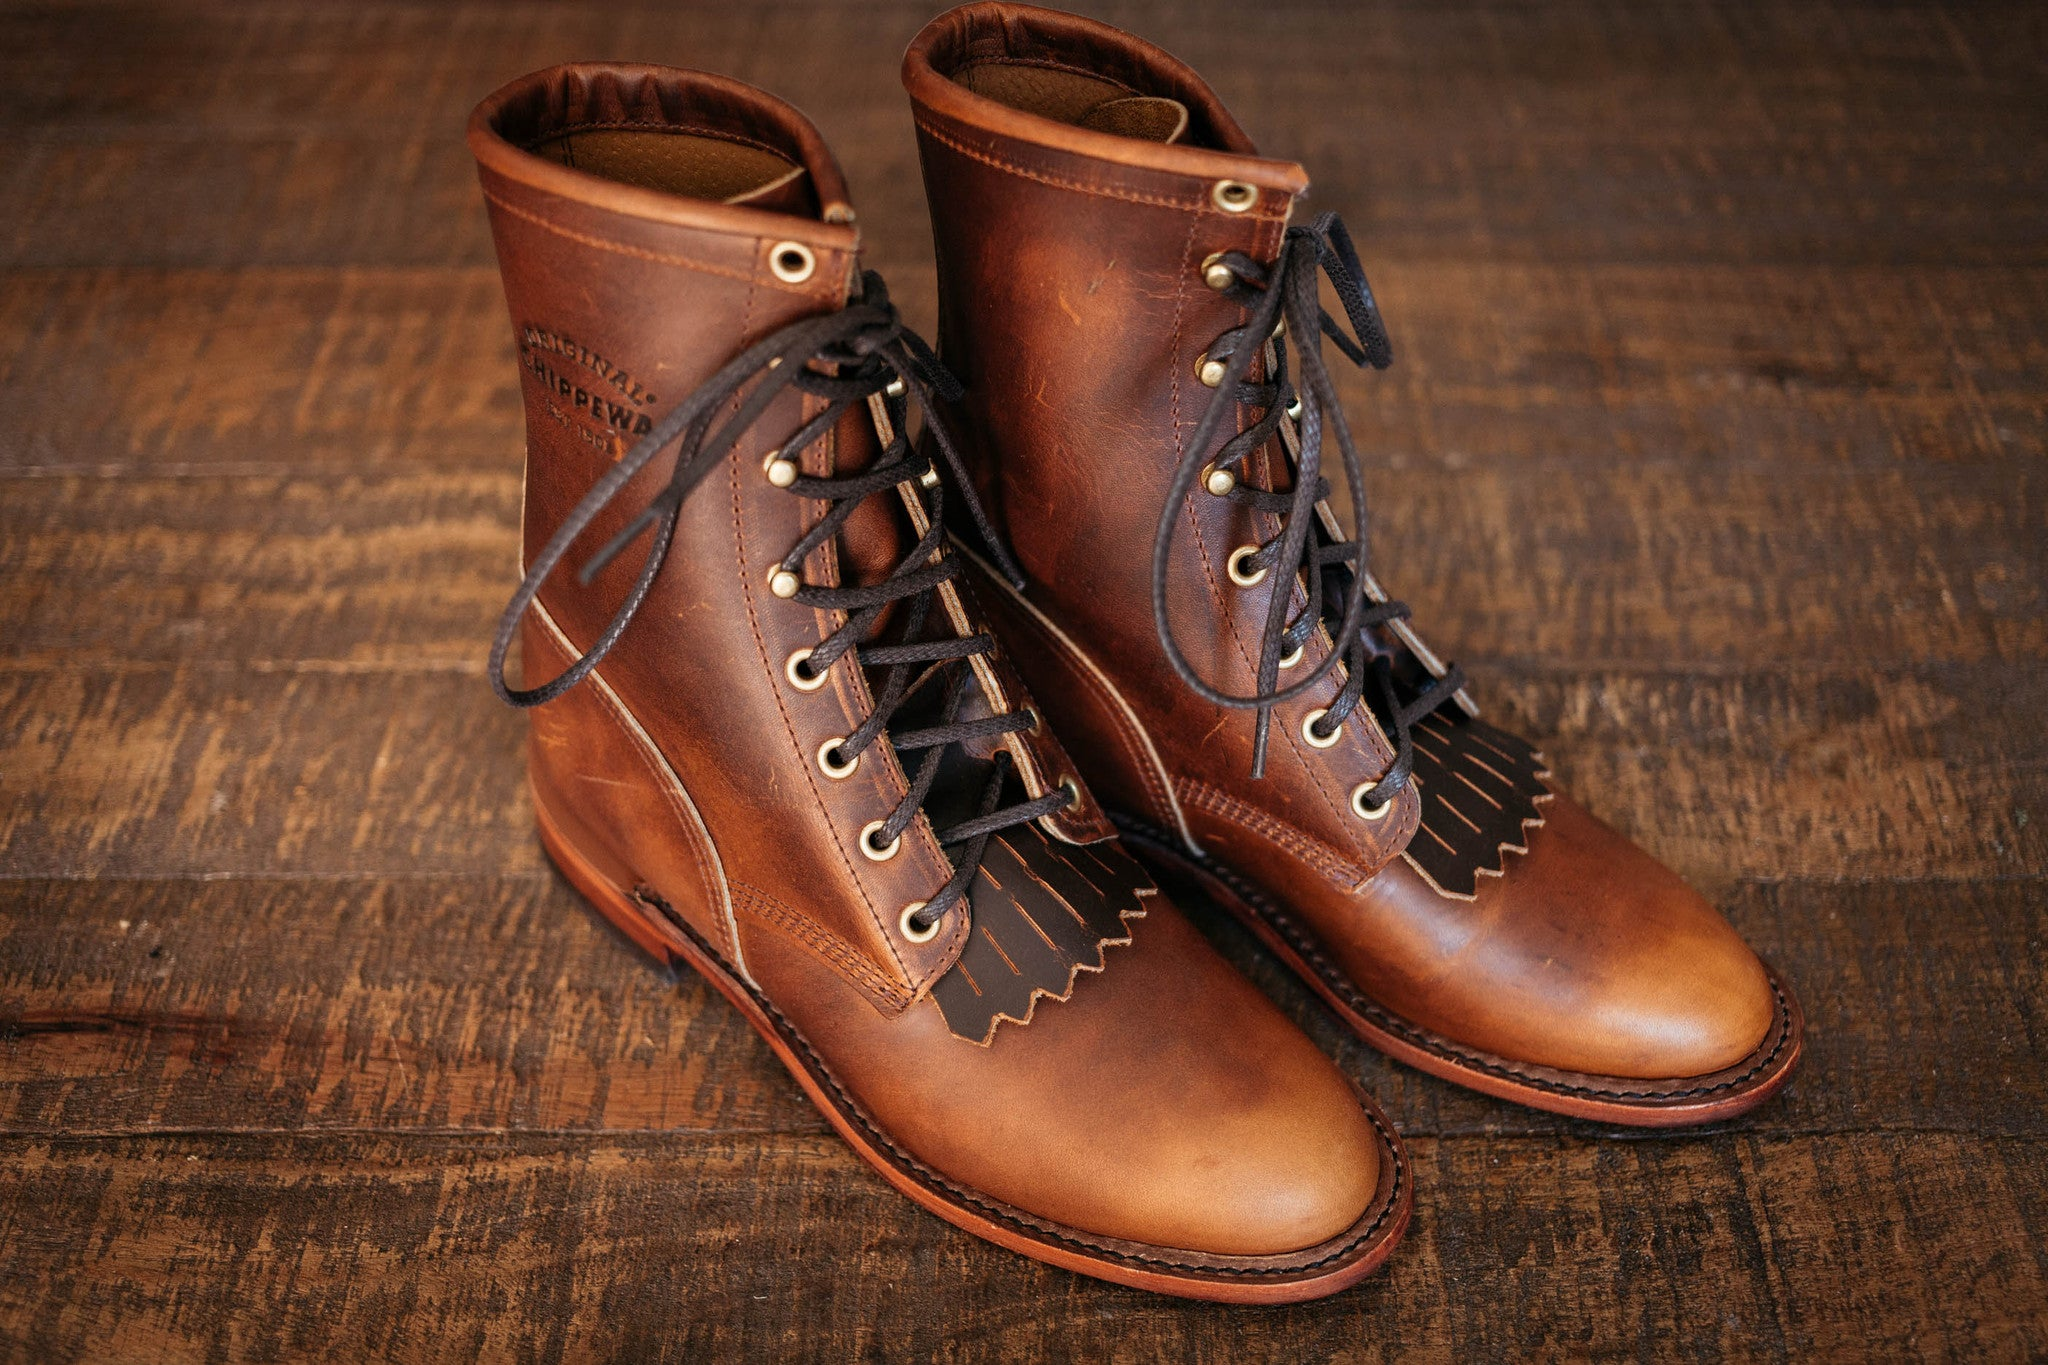 Chippewa Womens Lacer Boot - Renegade Tan Size 6 - Arcane Supply Co. 4921993f33